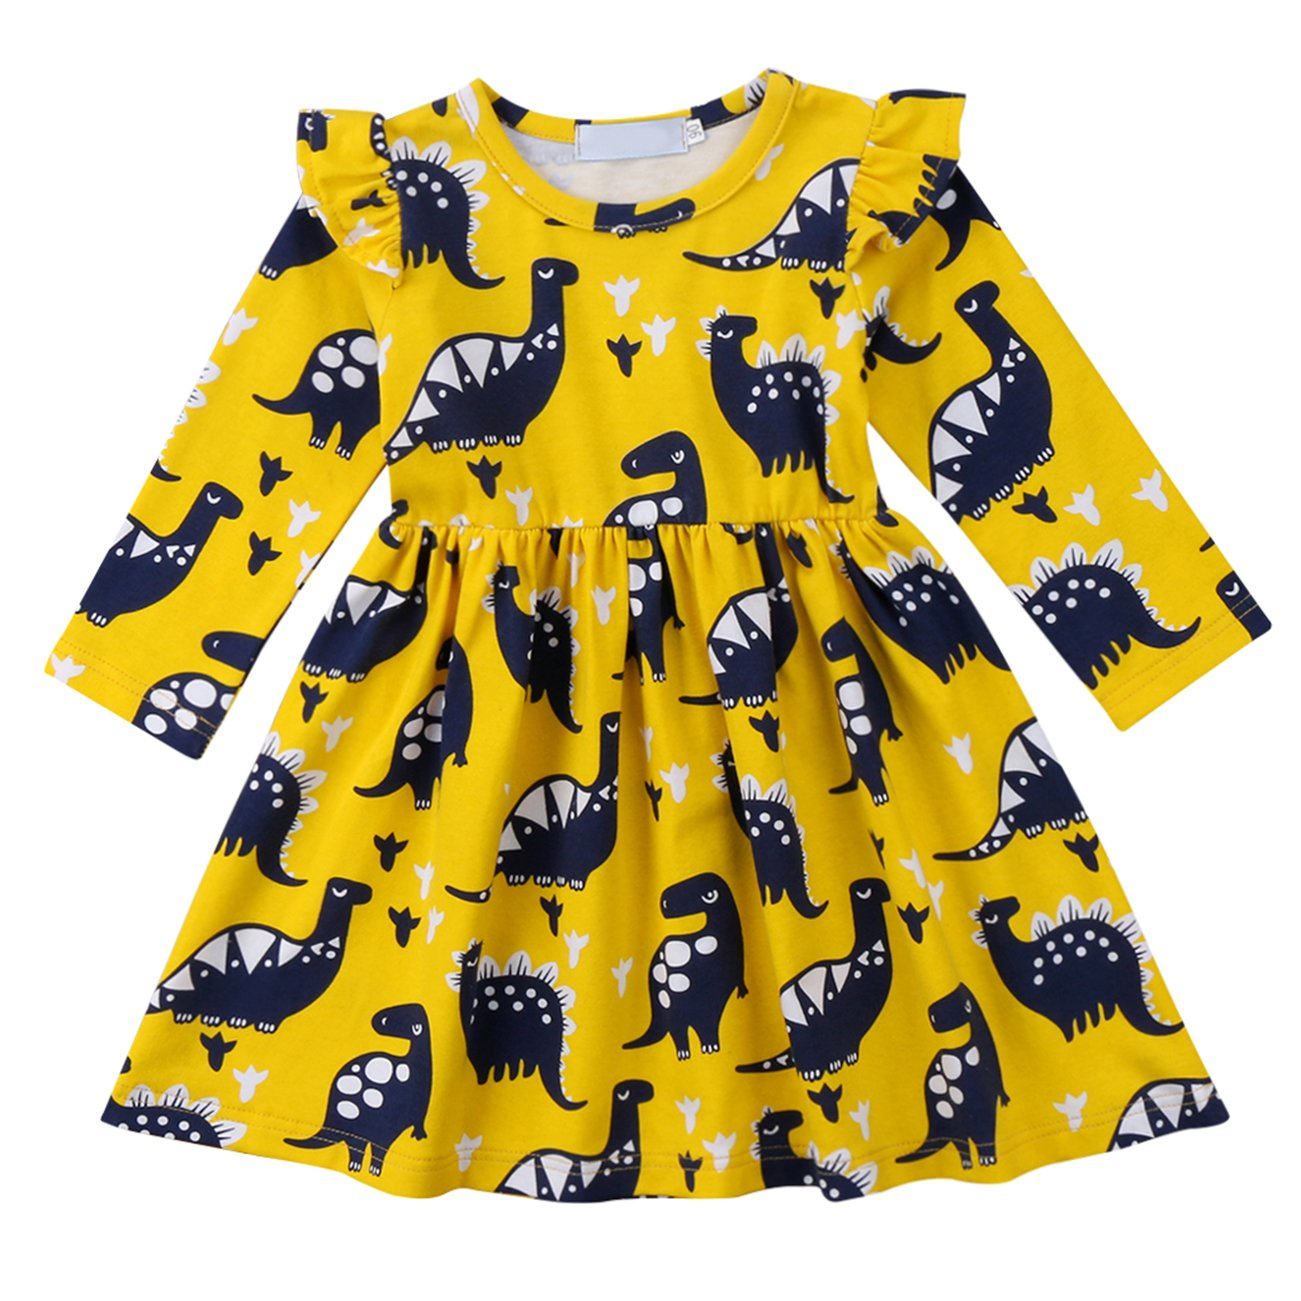 Qiylii Toddler Kids Baby Girl Dinosaur Dresses Ruffle Long Sleeve Holiday Dress Outfits Clothes